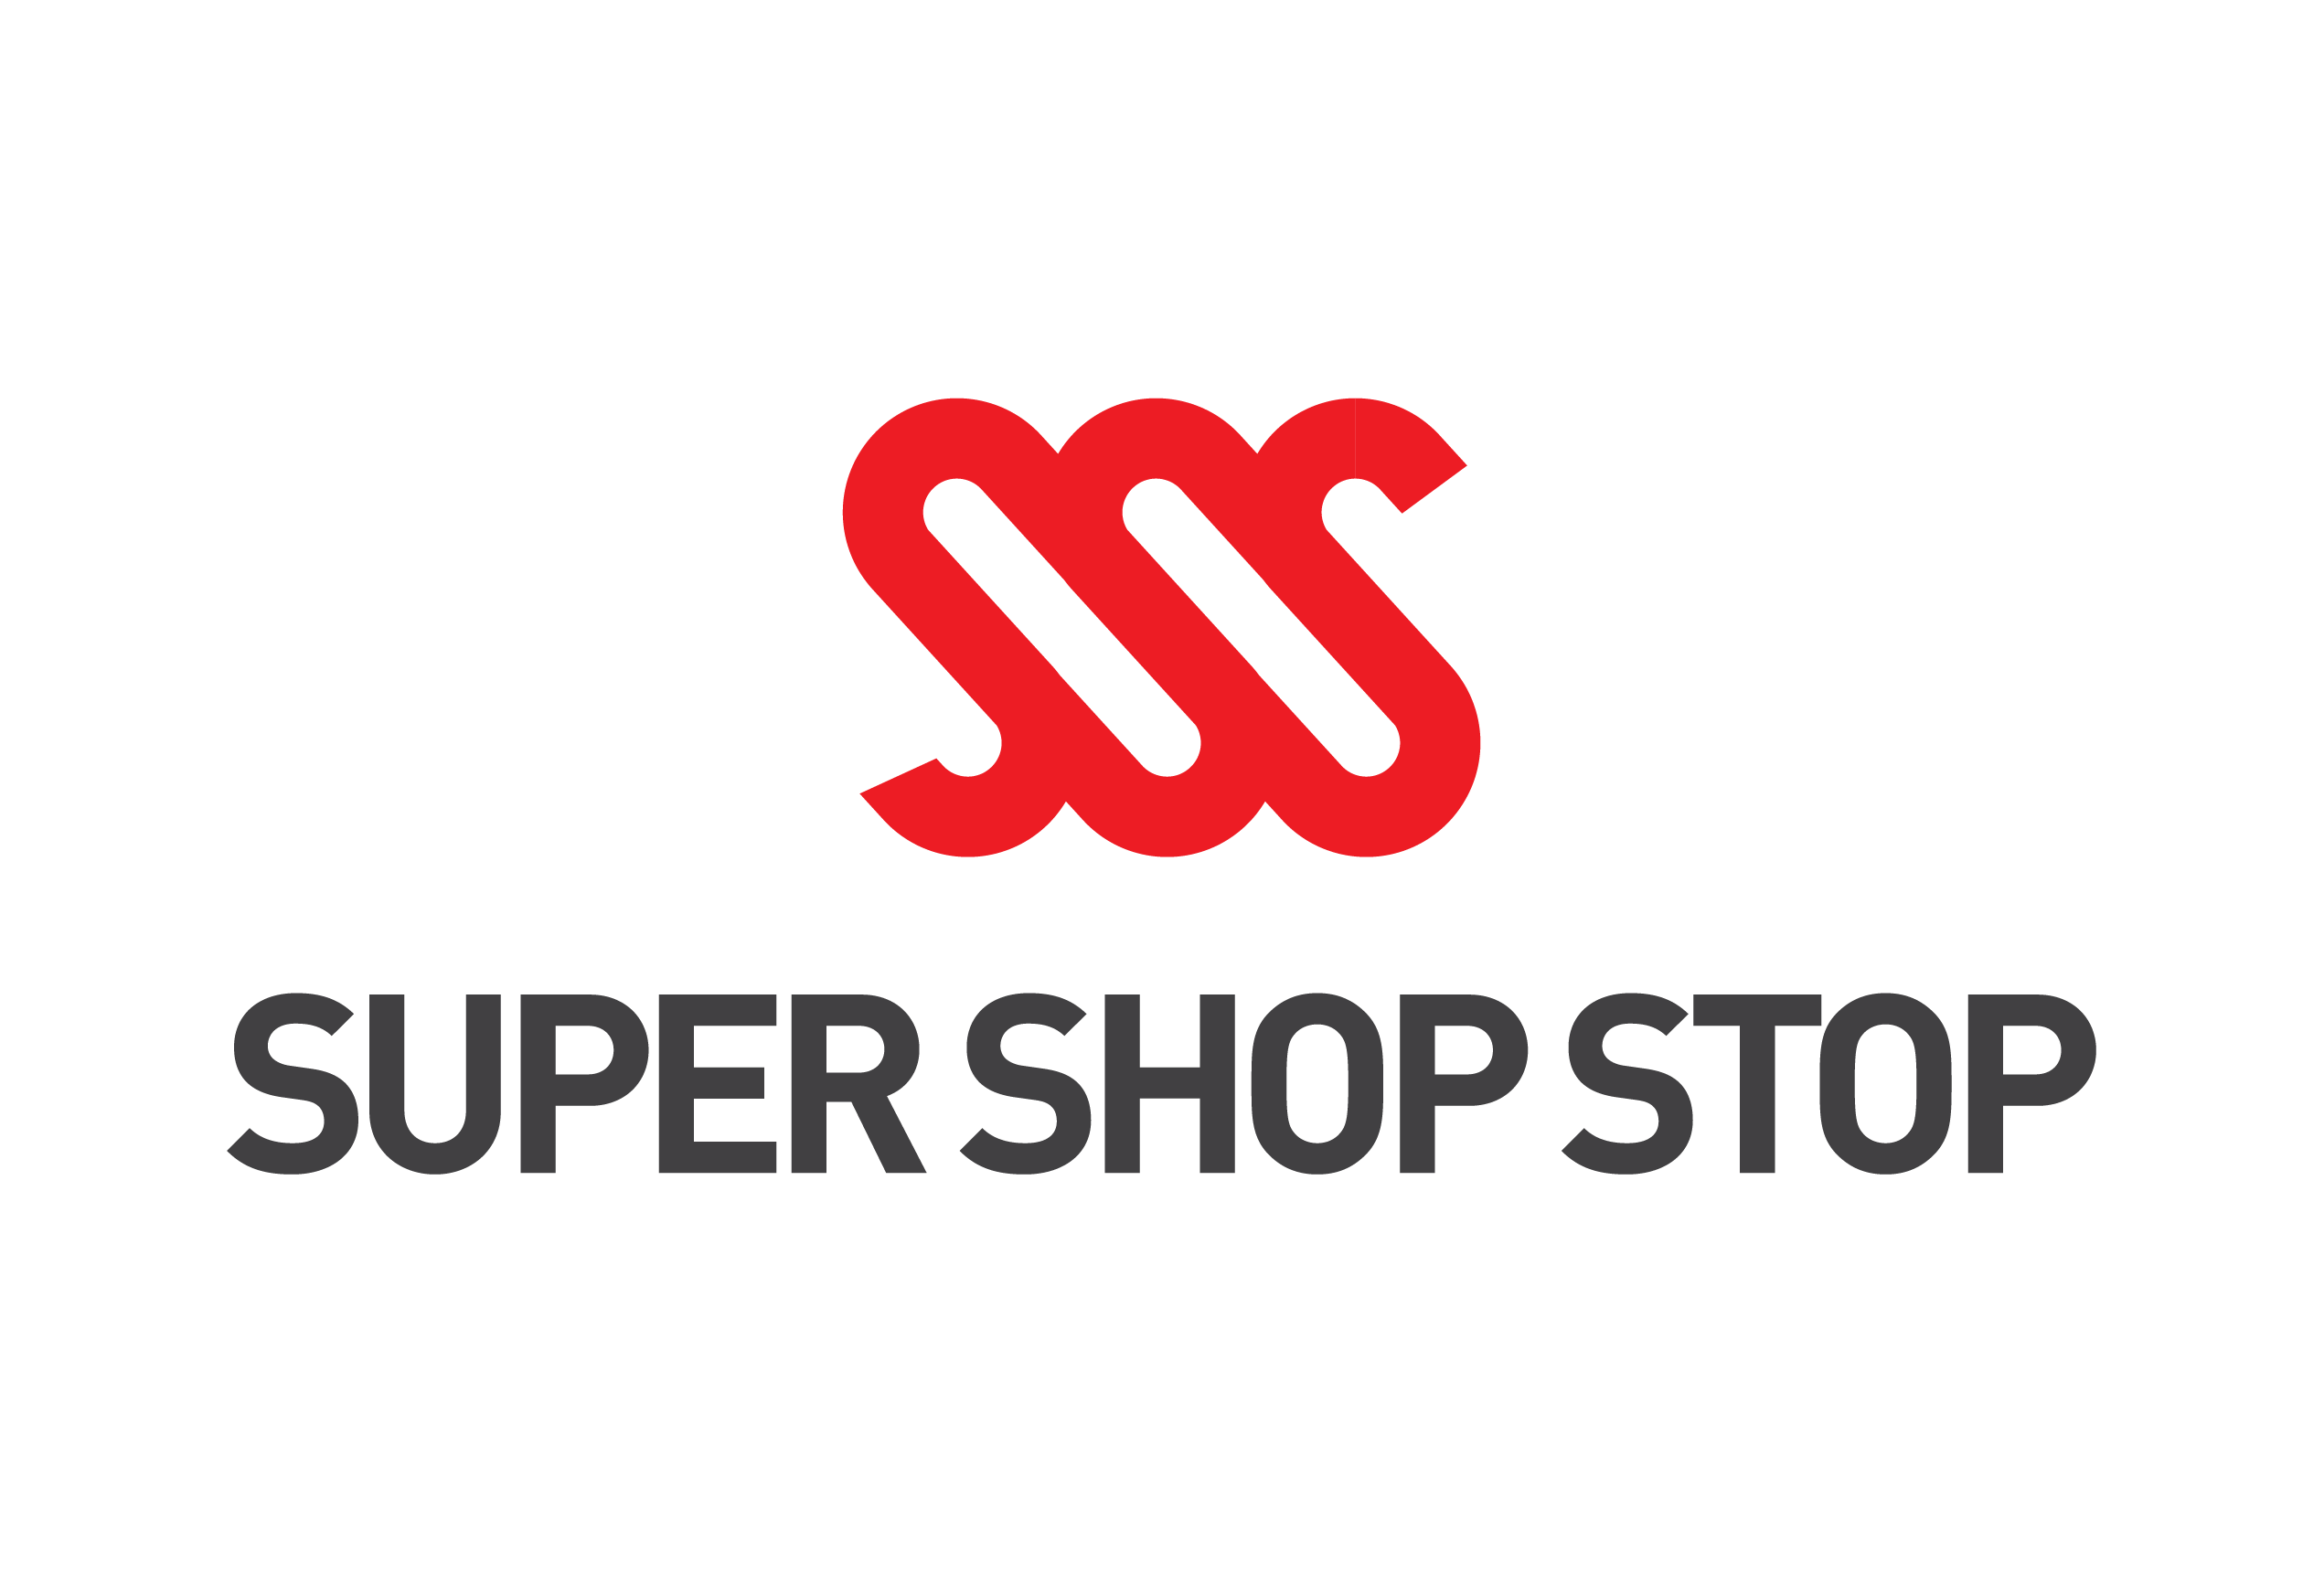 Products – Super Shop Stop